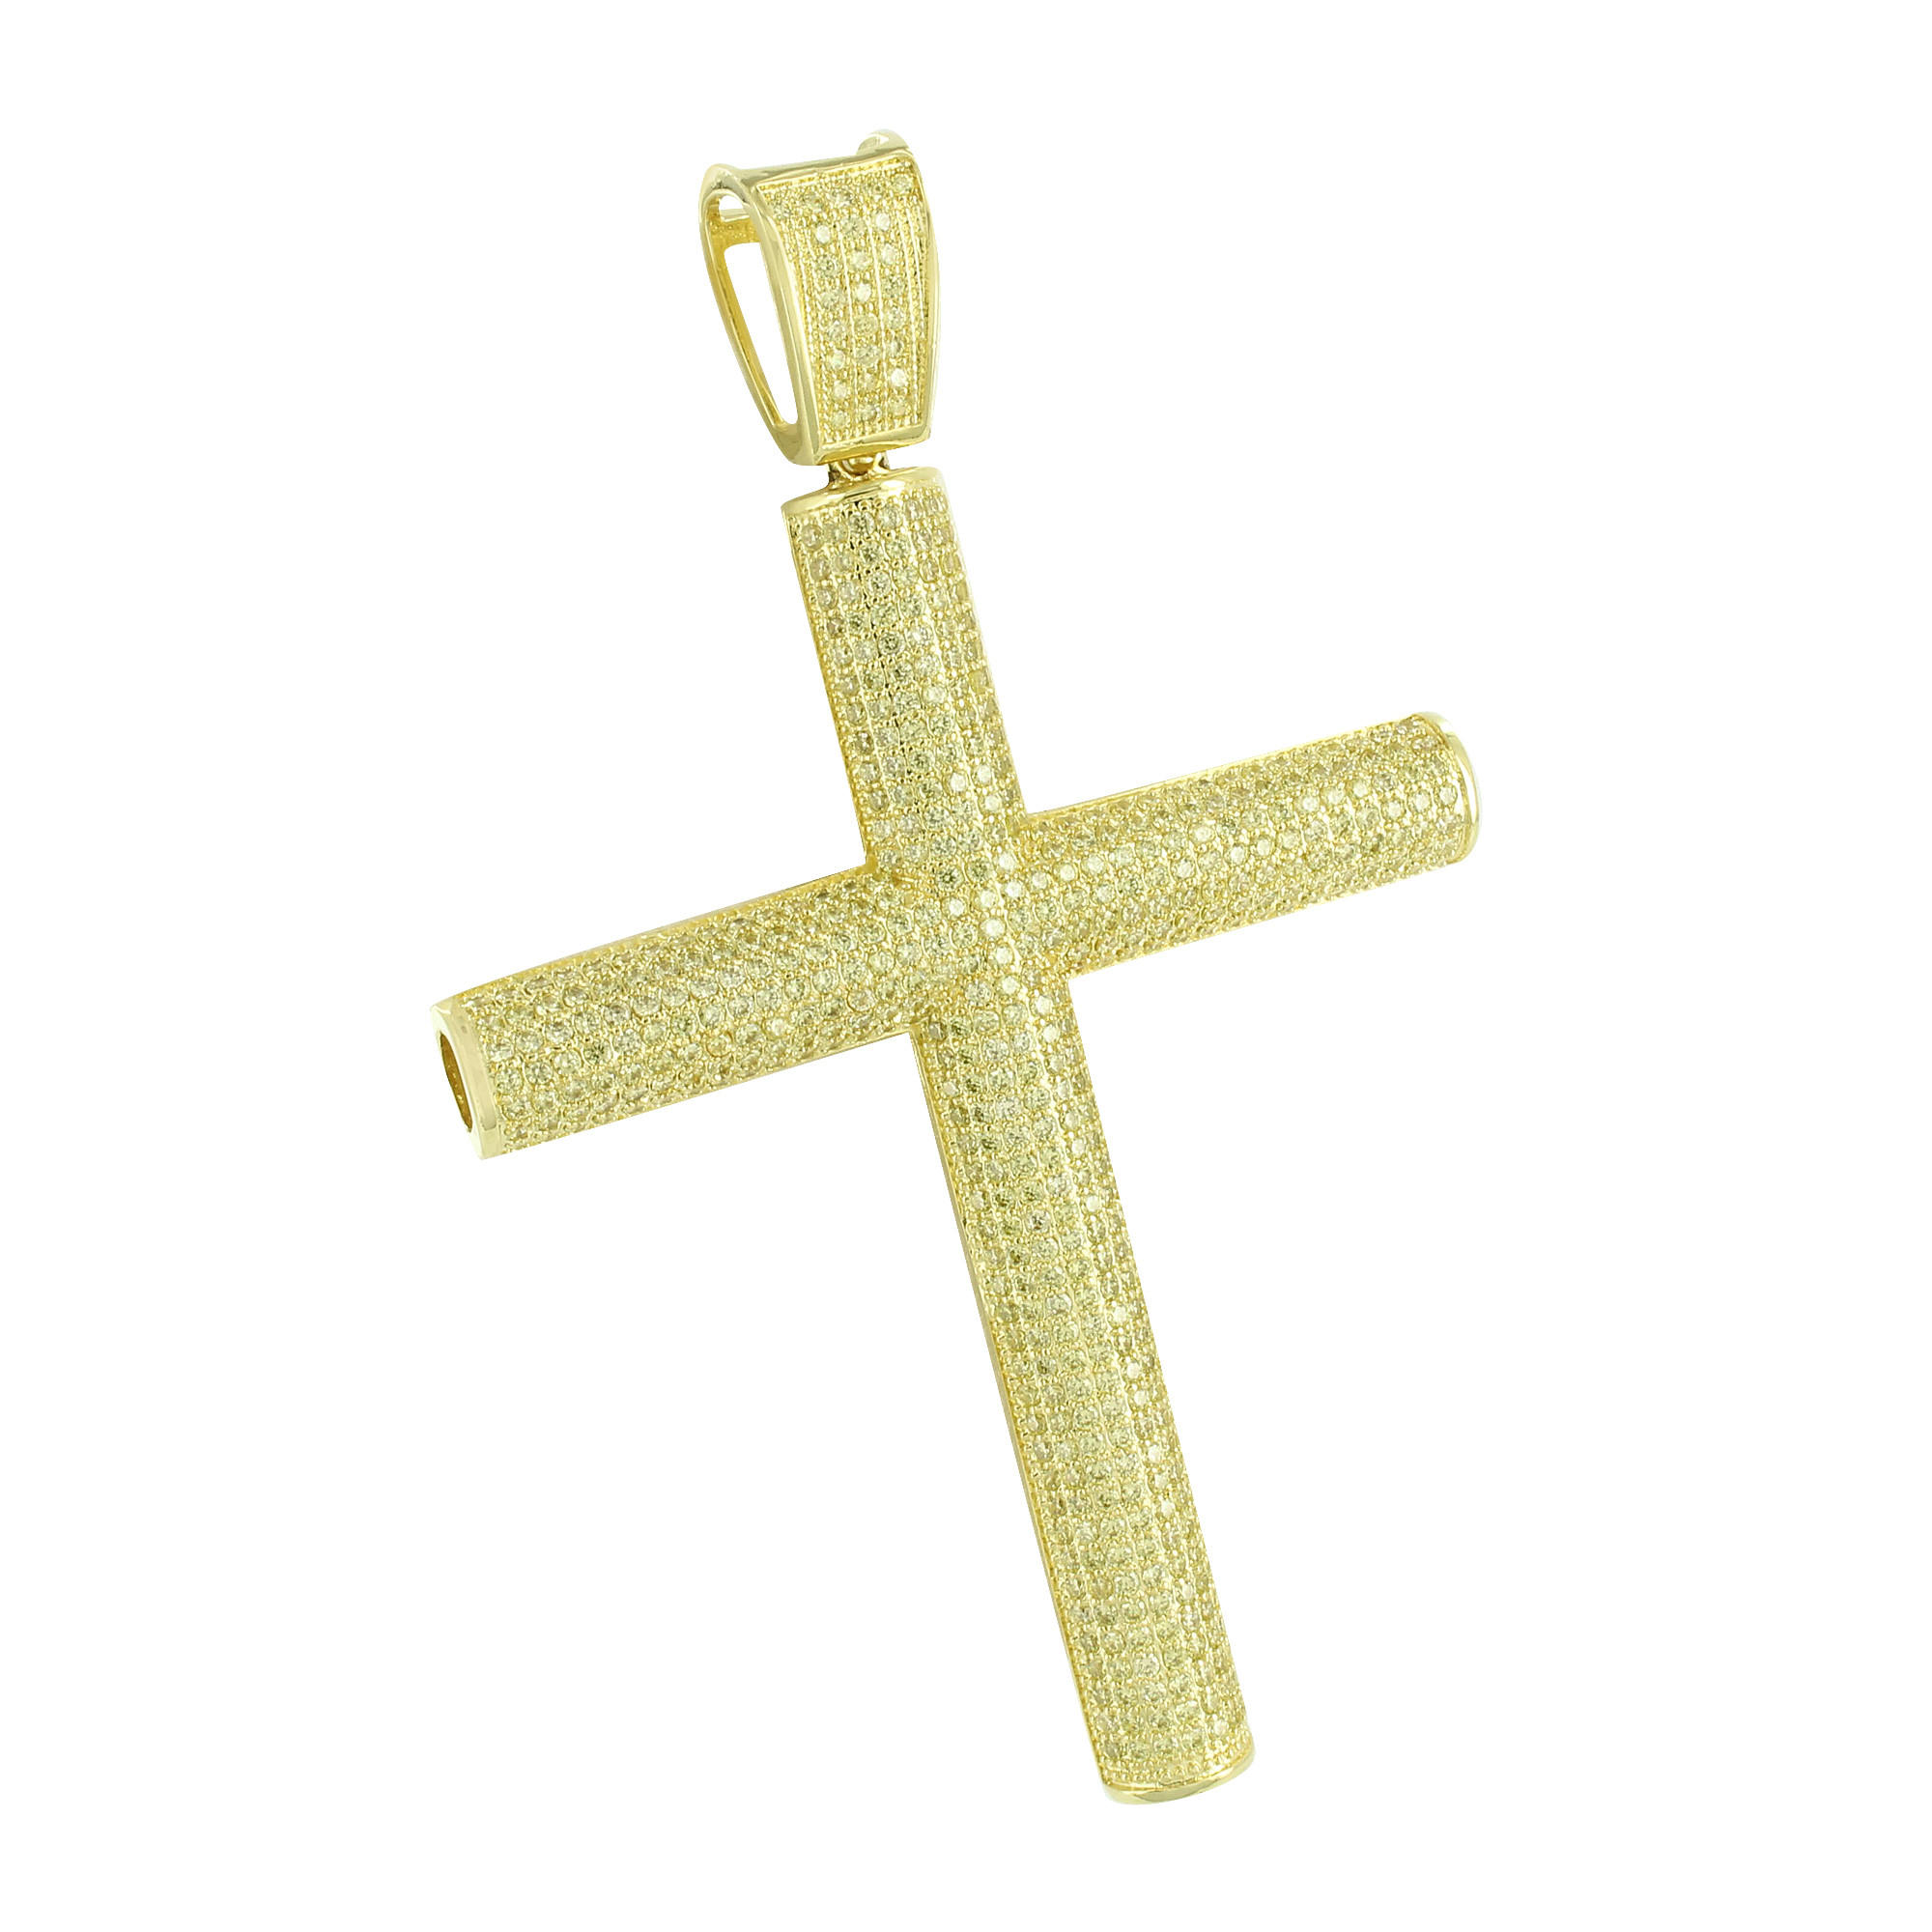 Image of Iced Out Cross Pendant Yellow Simulated Diamonds Cylinder Style